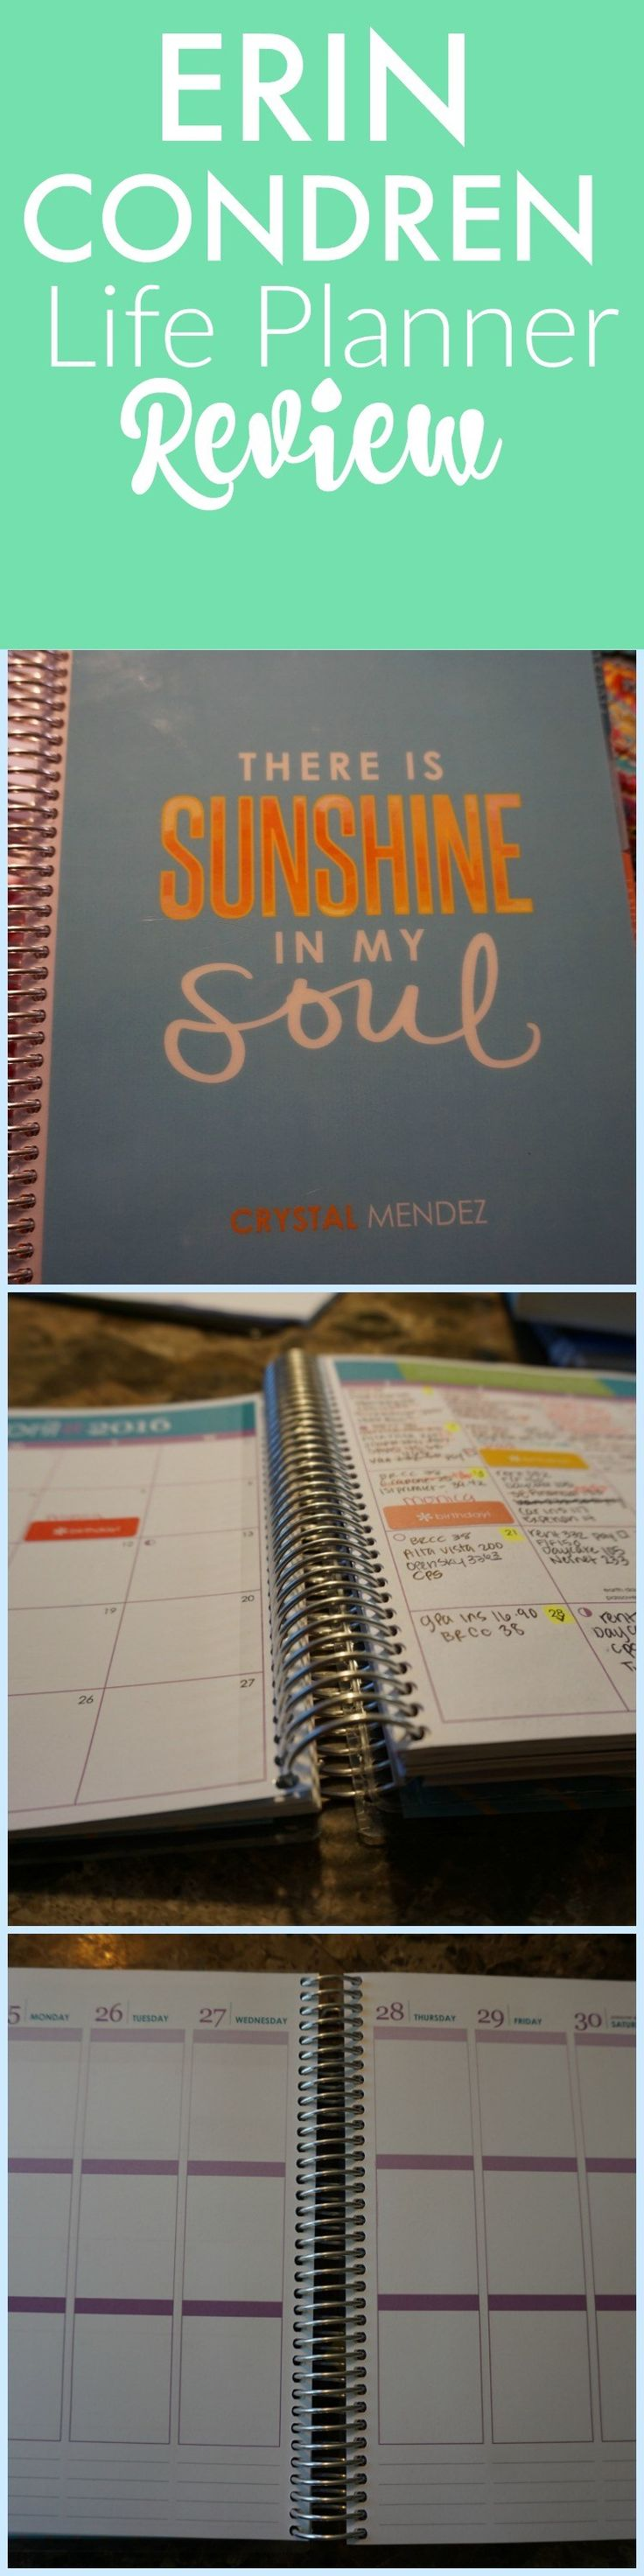 Erin Condren Life Planner Review. How I use this planner to manage my bills, blogging and daily schedule.